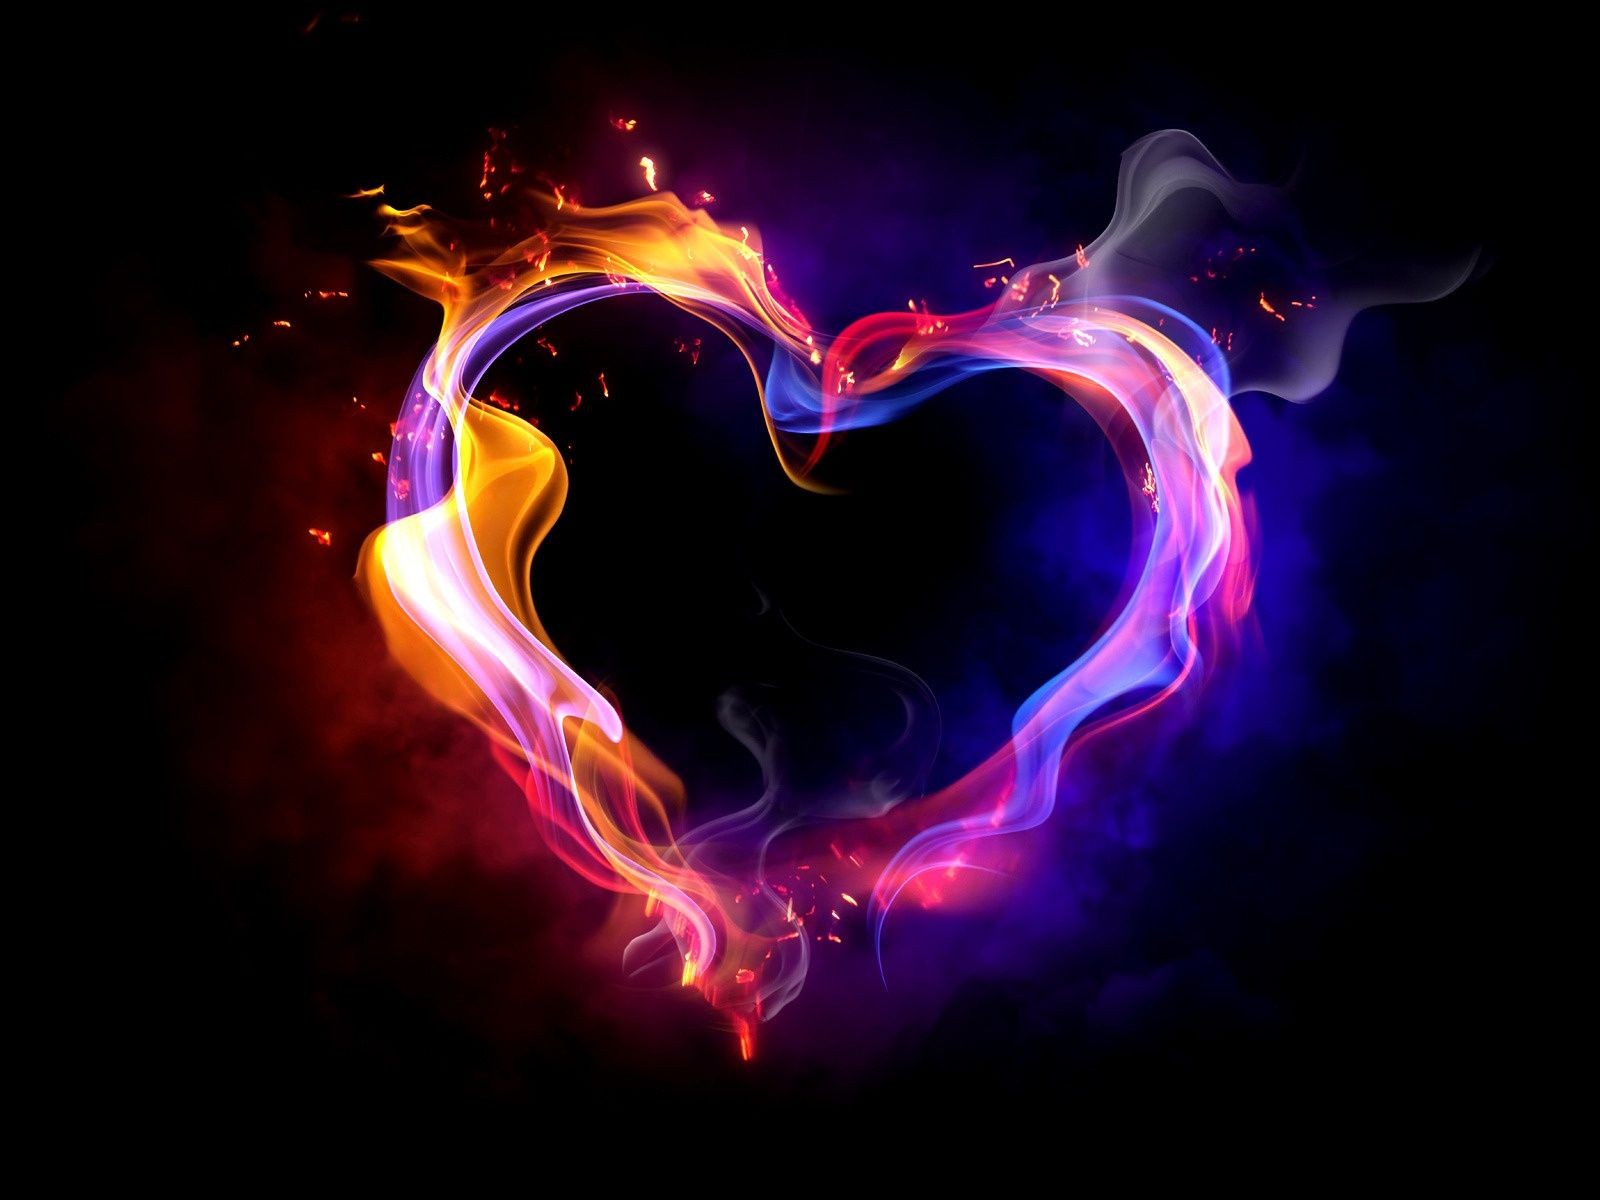 Psychic Email Reading Partnership Relationships Fire Heart Pictures Heart Wallpaper